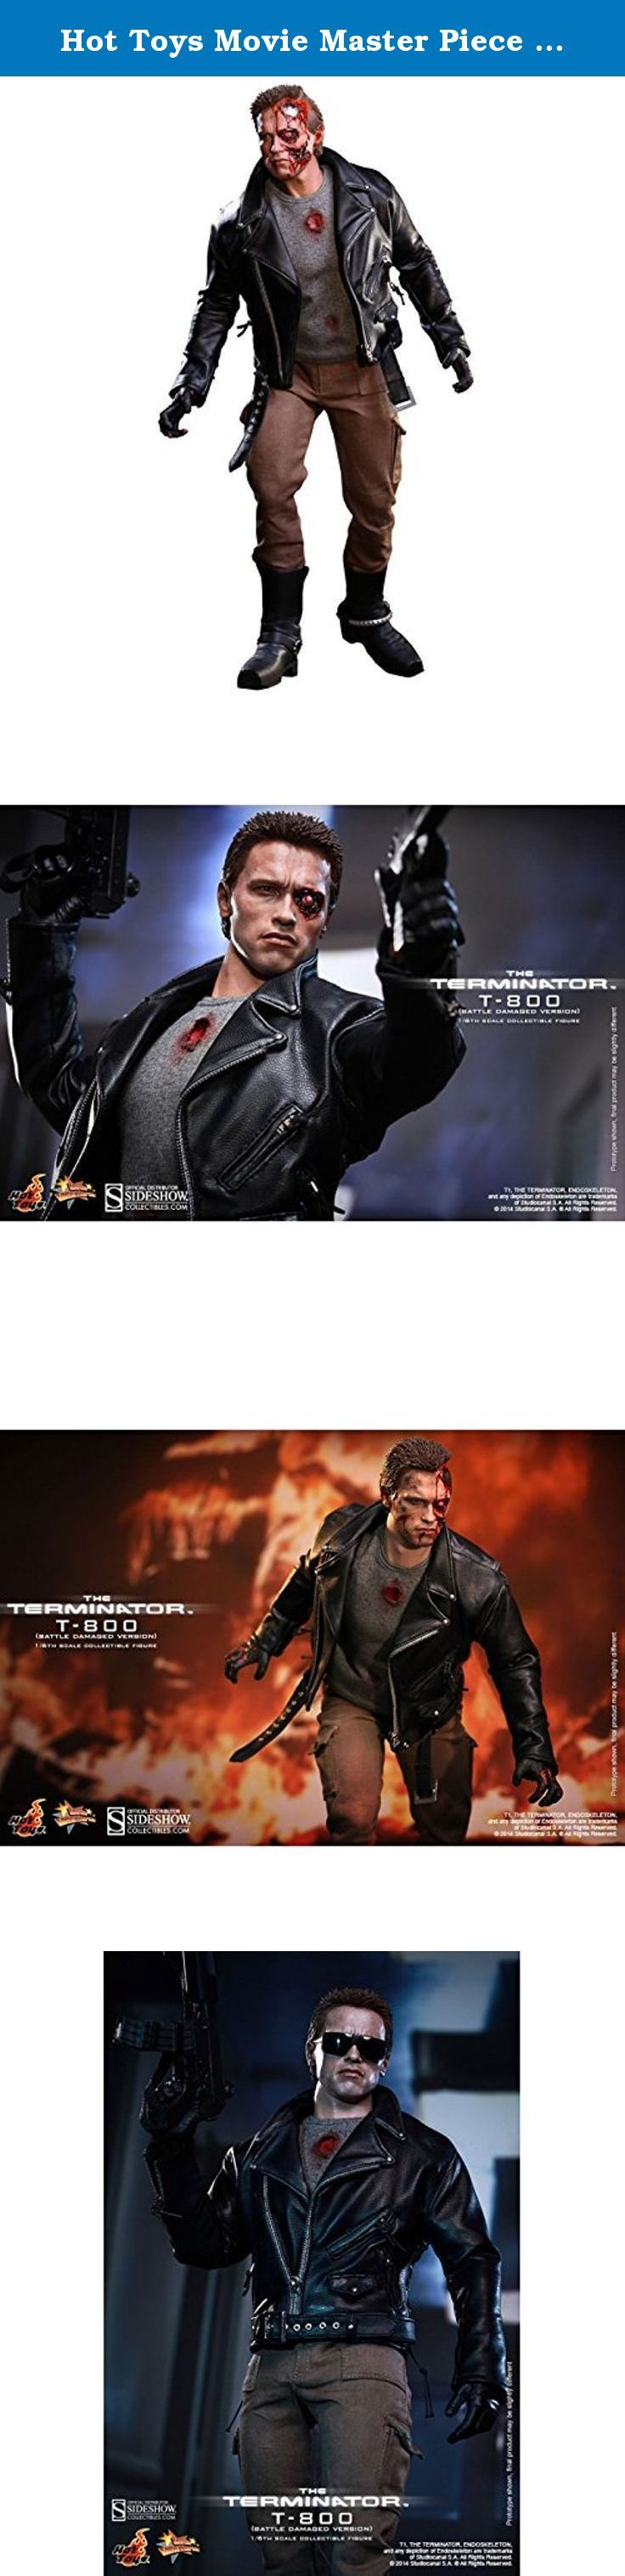 Hot Toys Movie Master Piece - The Terminator: T-800 Battle Damaged Version. Ill be back. Arnold Schwarzeneggers iconic portrayal of the cyborg assassin in The Terminator has remained a classic in popular culture and among fans! Sideshow Collectibles and Hot Toys proudly present the T-800 (Battle Damaged Version) sixth scale figure from The Terminator.The T-800 collectible is specially crafted based on the image of Arnold Schwarzenegger in battle damaged look from the movie featuring two...